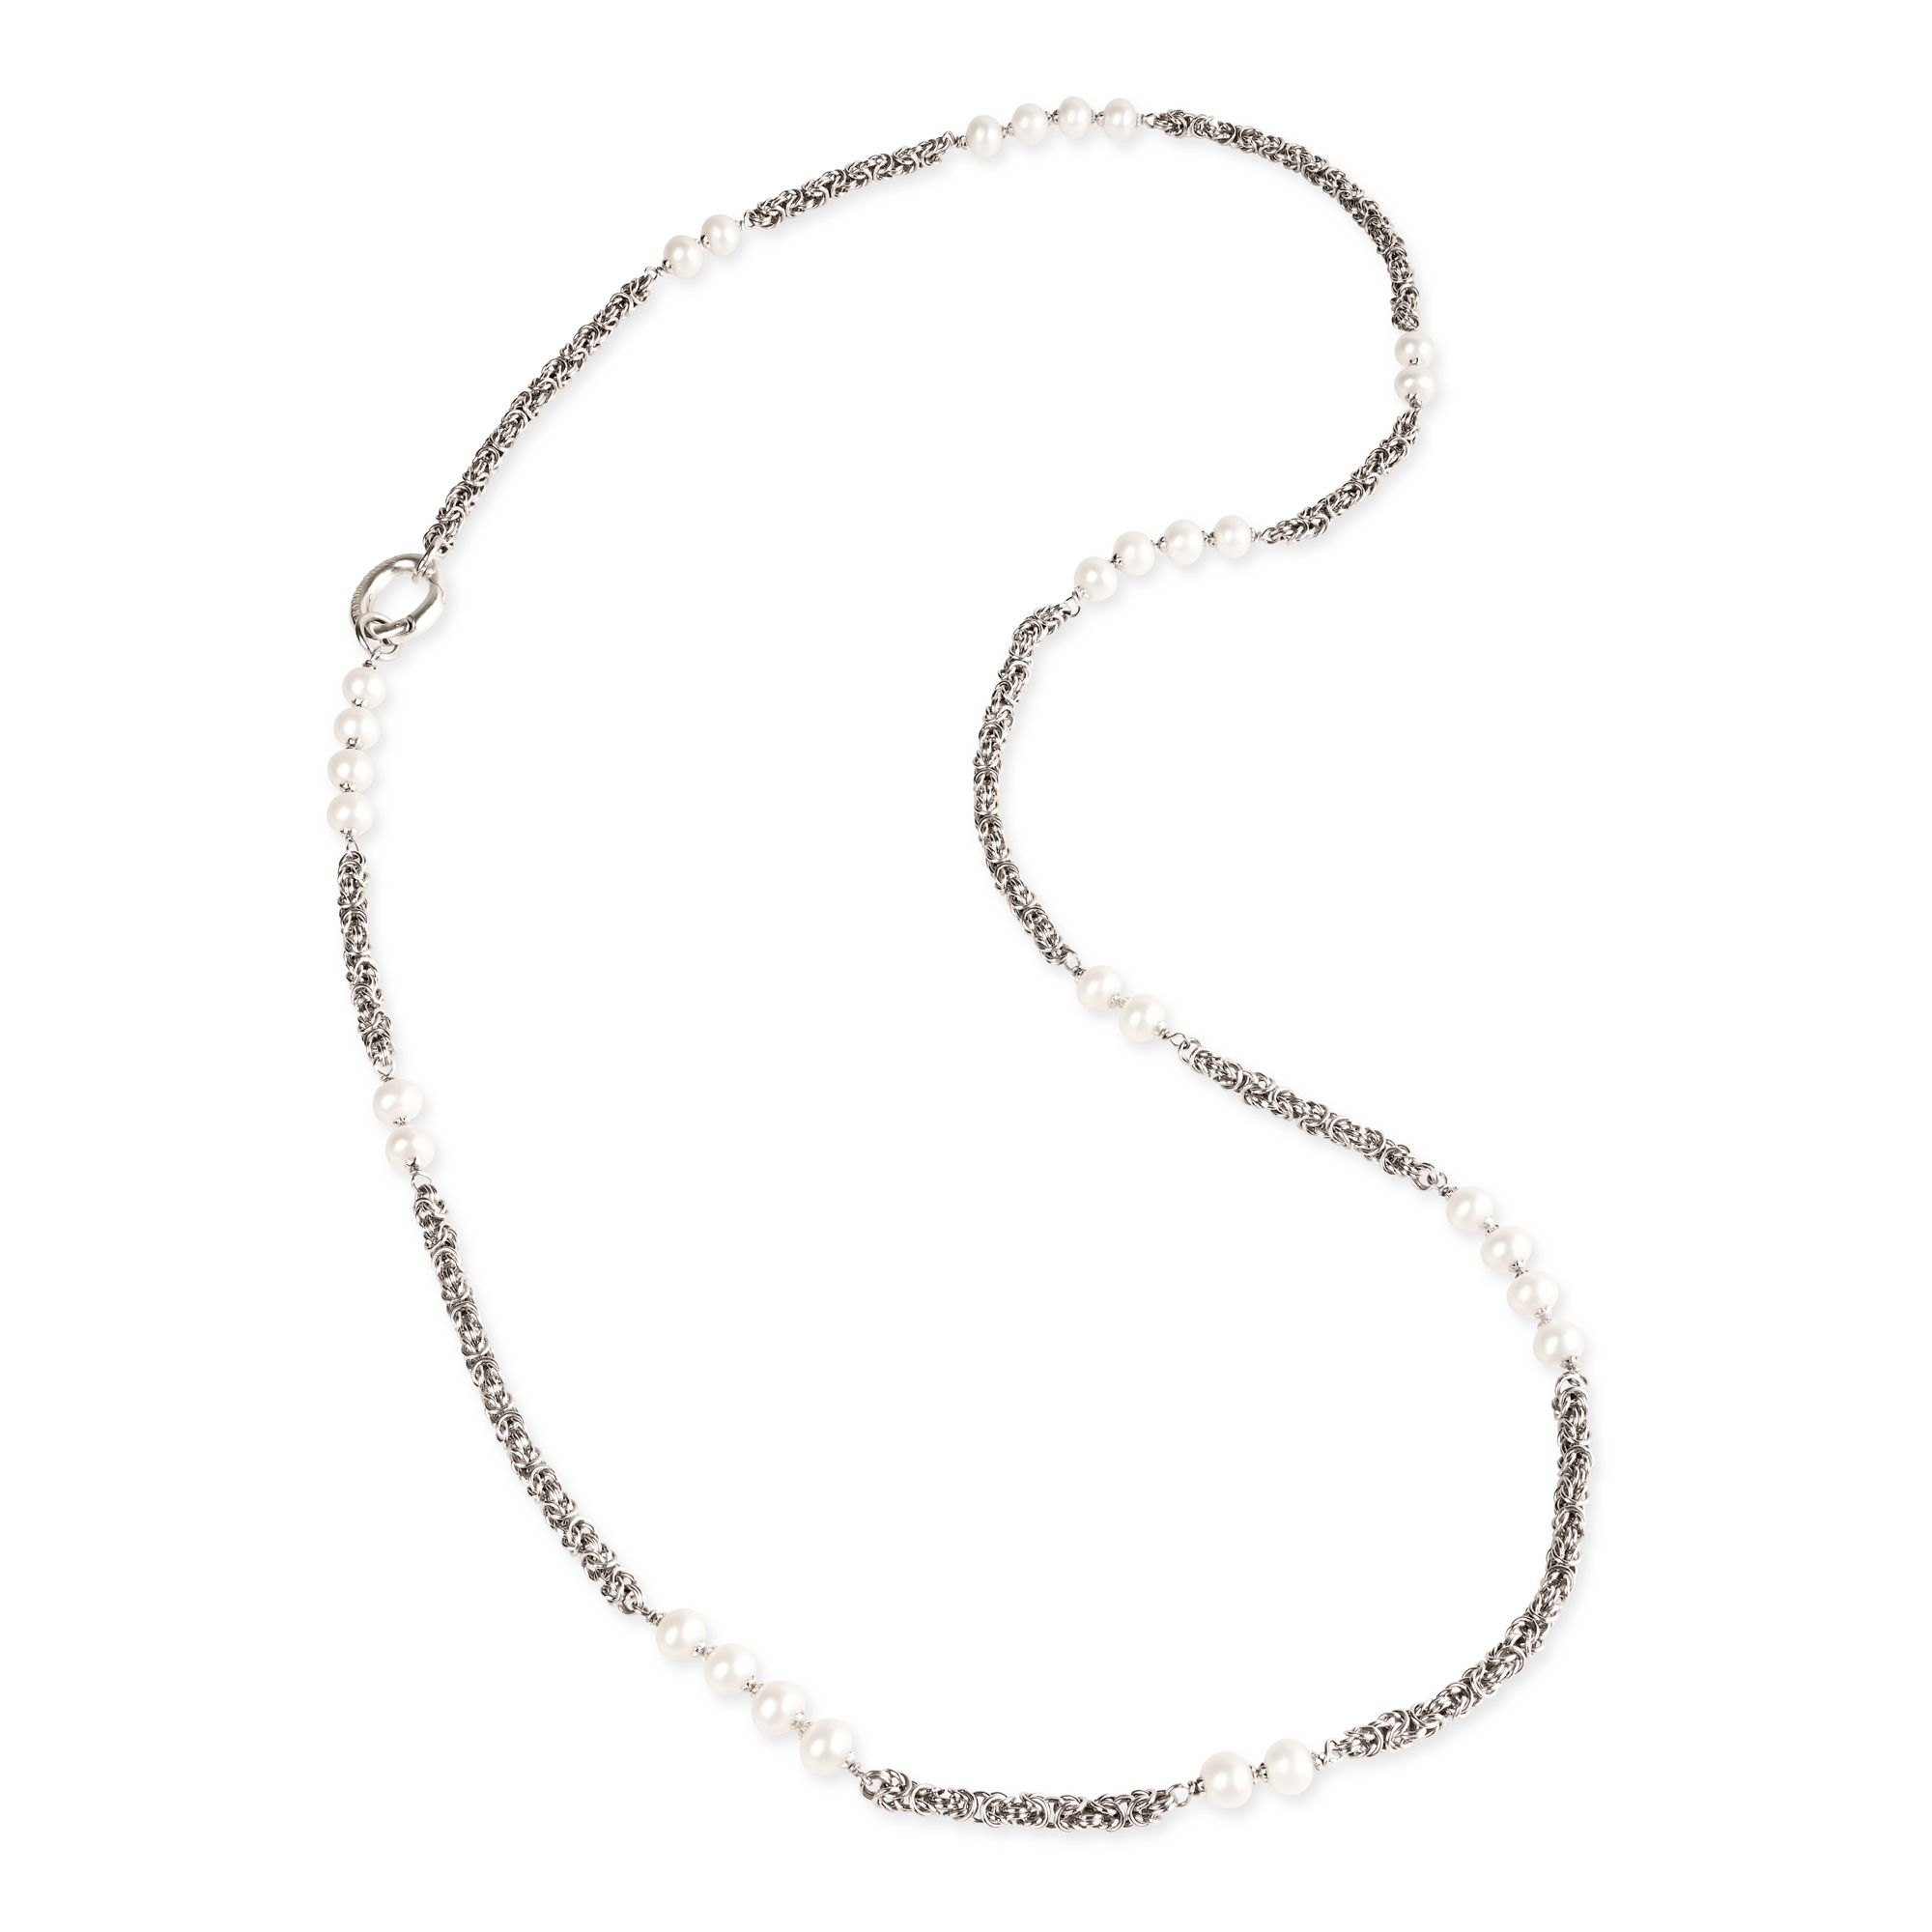 Byzantine link chain Neklace with pearls (27865)